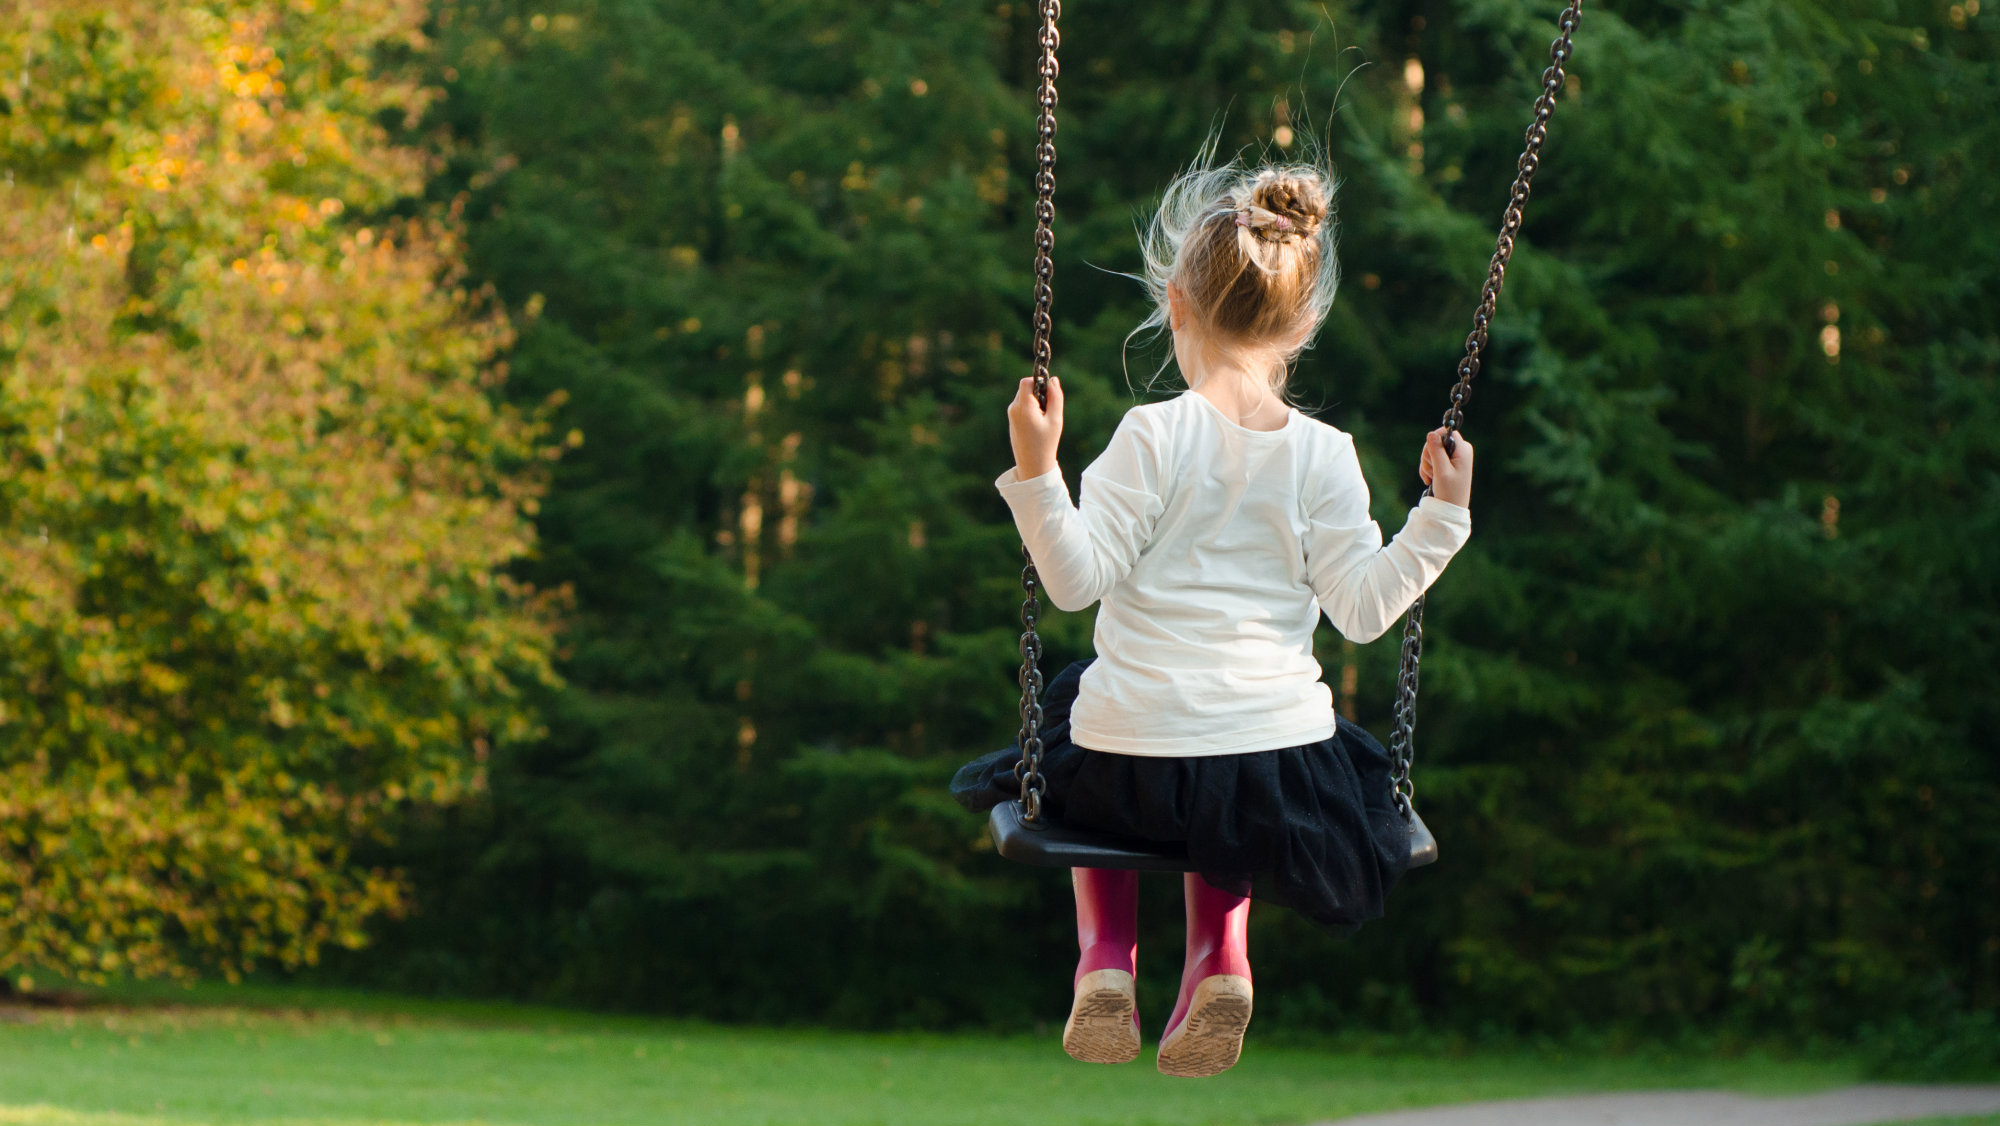 Image of a girl on a swing